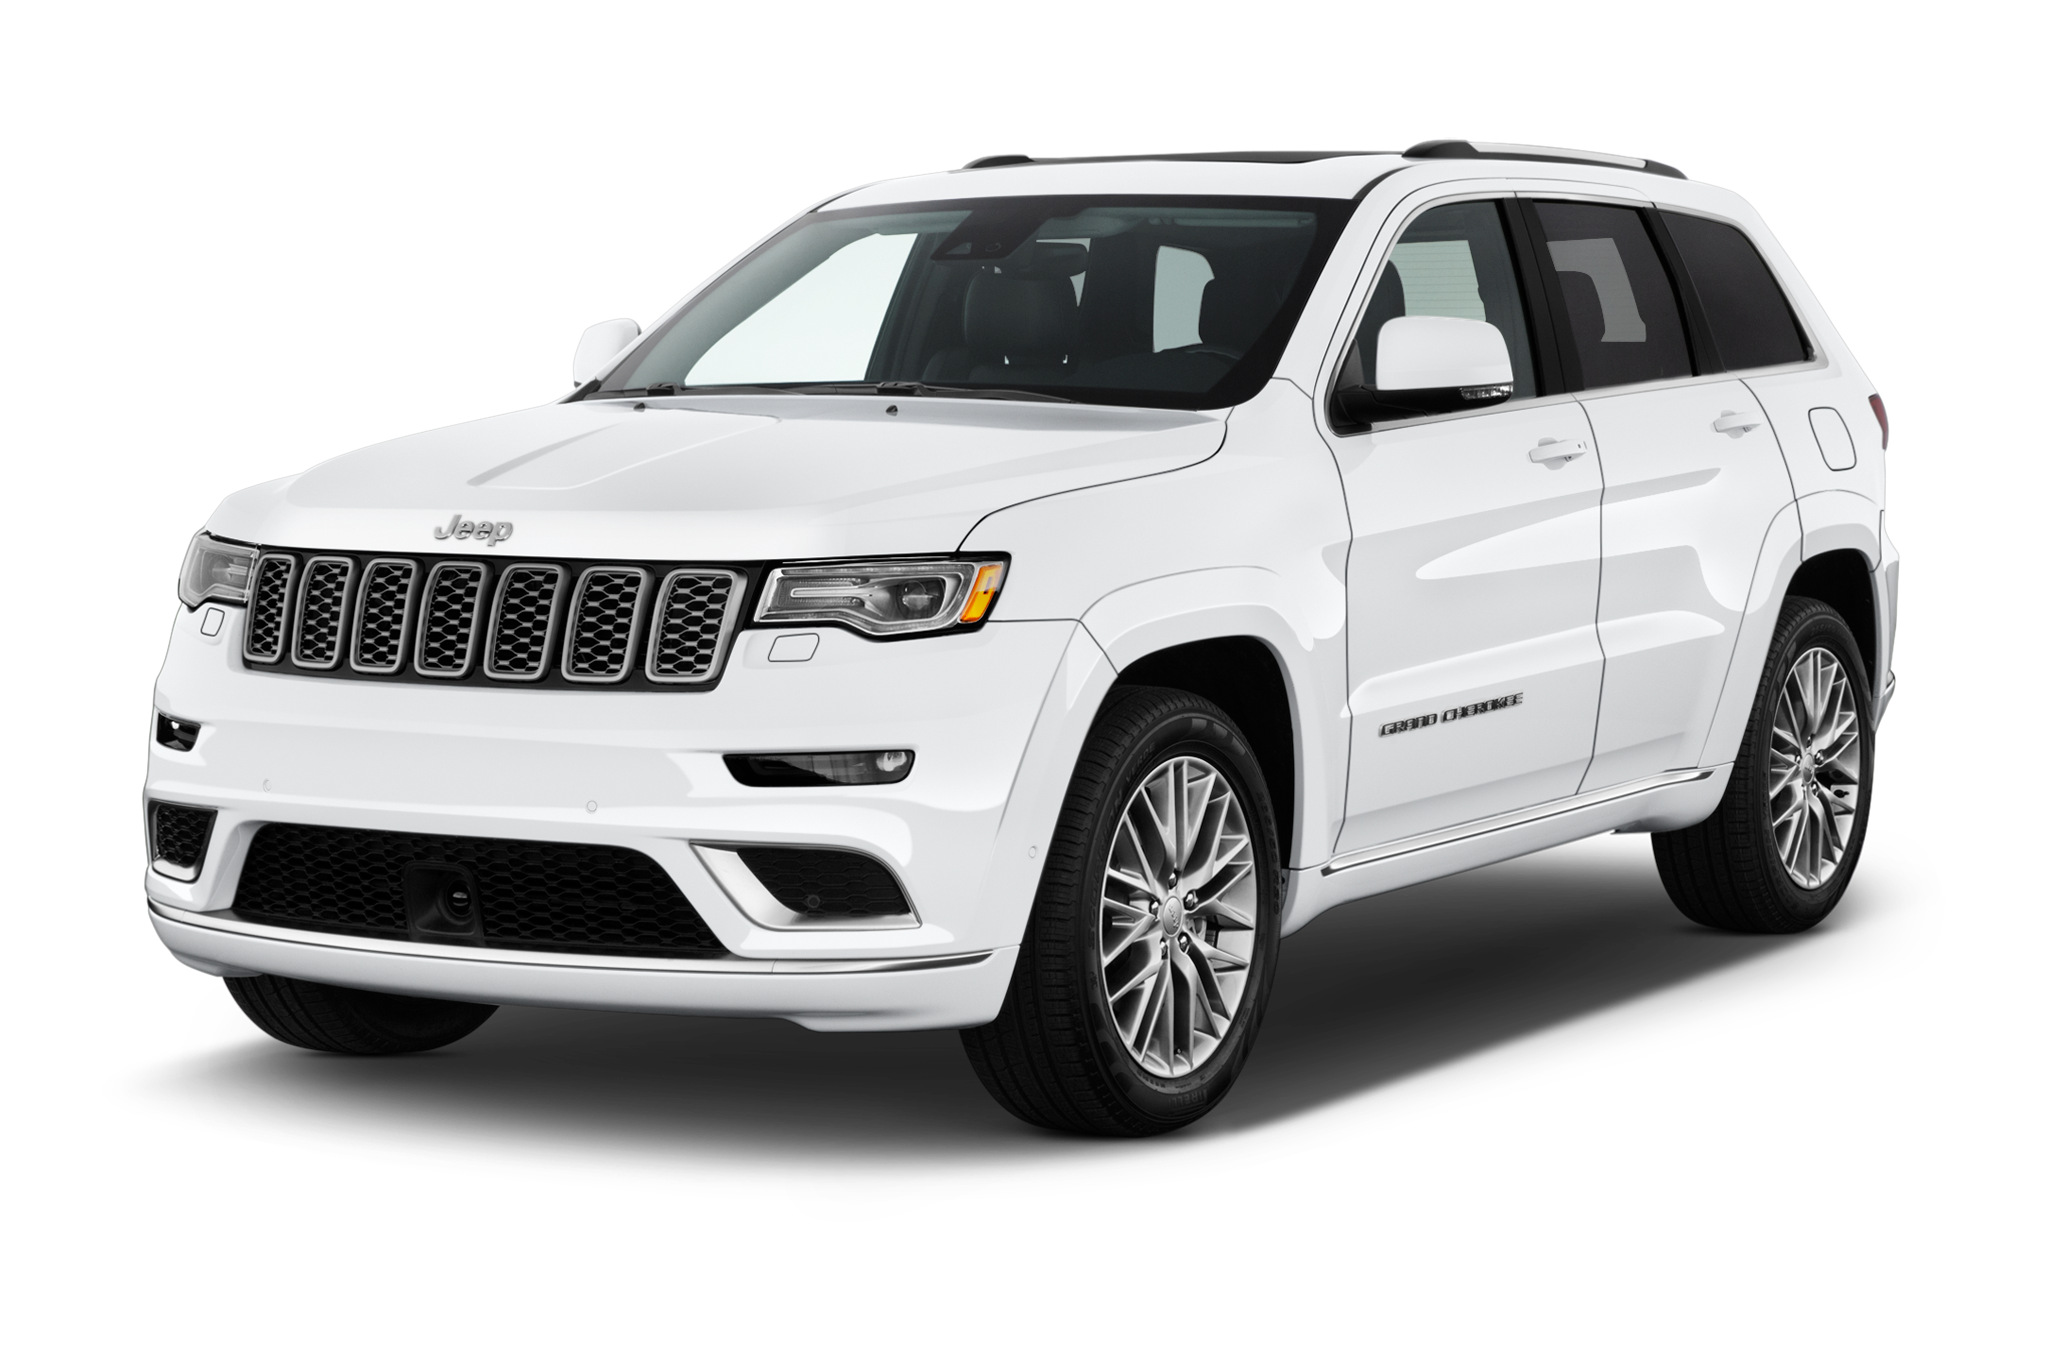 2018 jeep grand cherokee specs and features msn autos. Black Bedroom Furniture Sets. Home Design Ideas